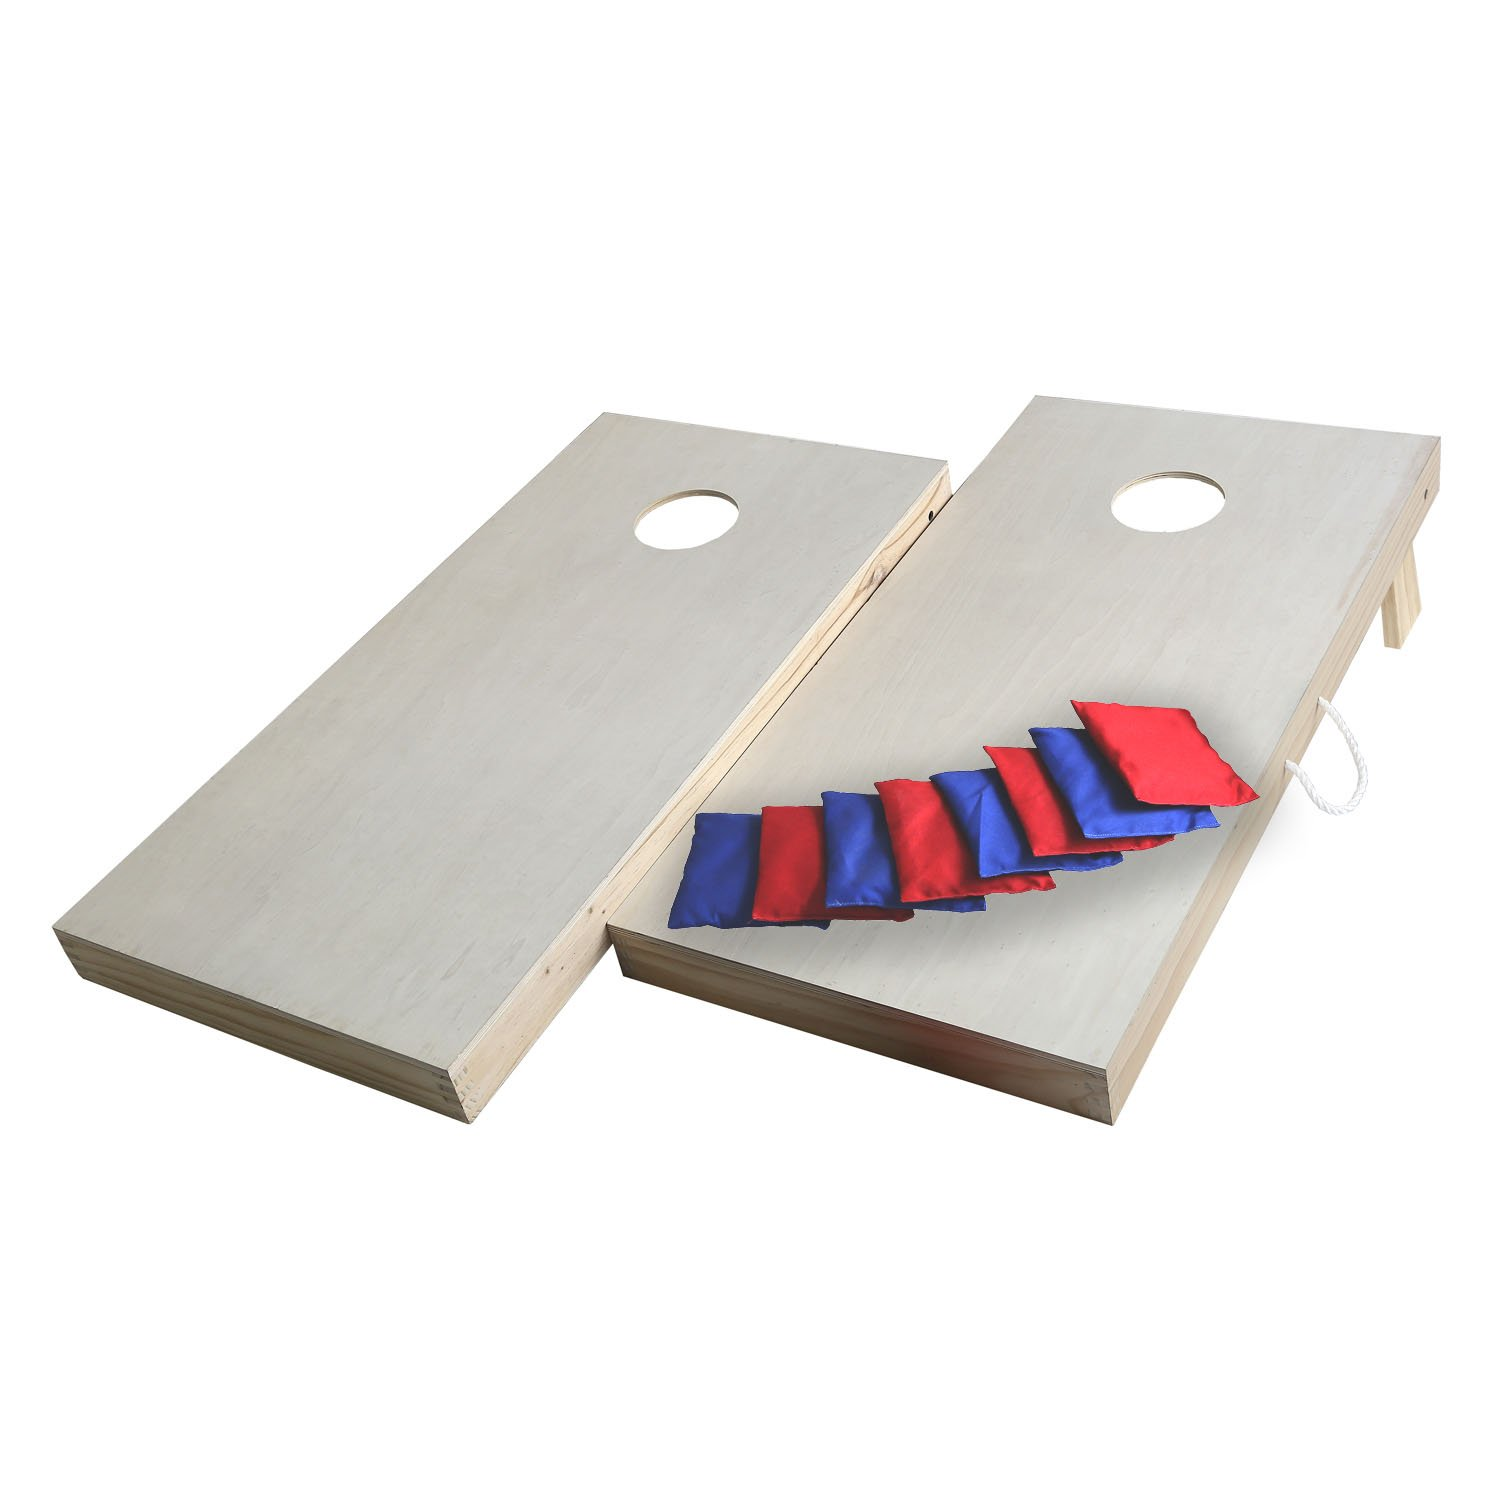 Verus Sports Cornhole Tournamentセット、木製 B0792MJLZF